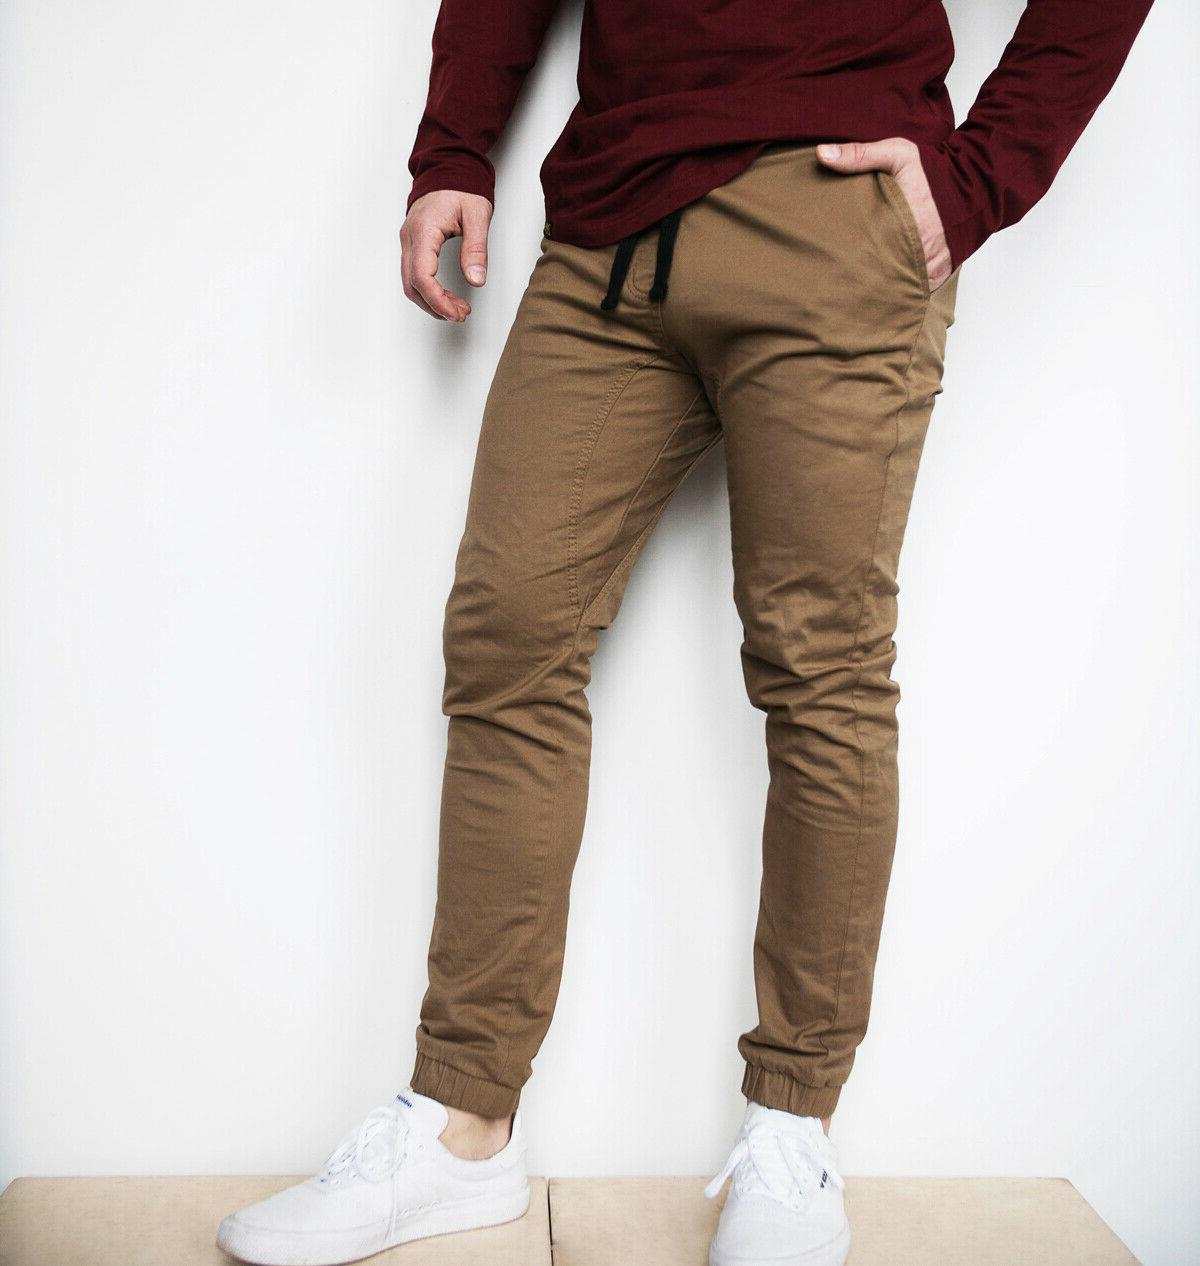 Zeres Clothing Pants